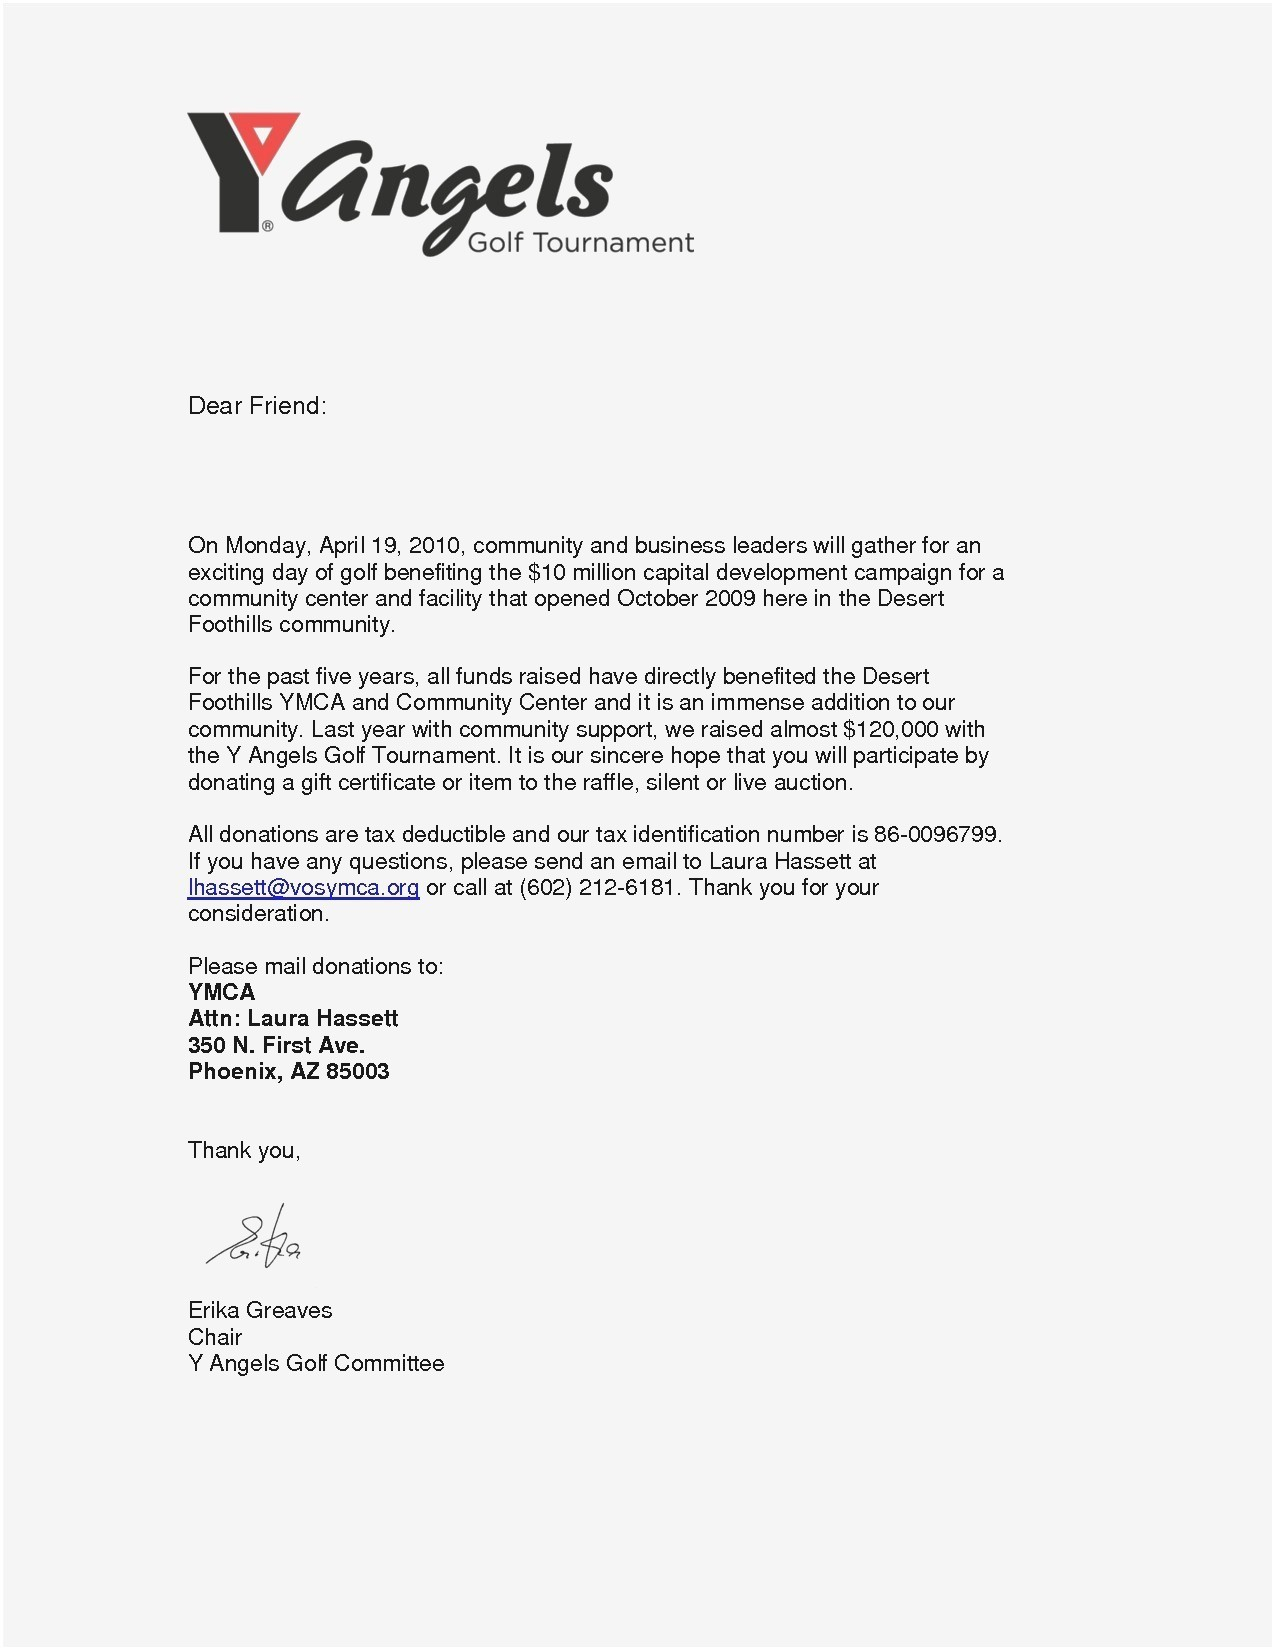 golf tournament donation letter template example-Business Donation Letter Template Save Donation Request Letter Template 6-d